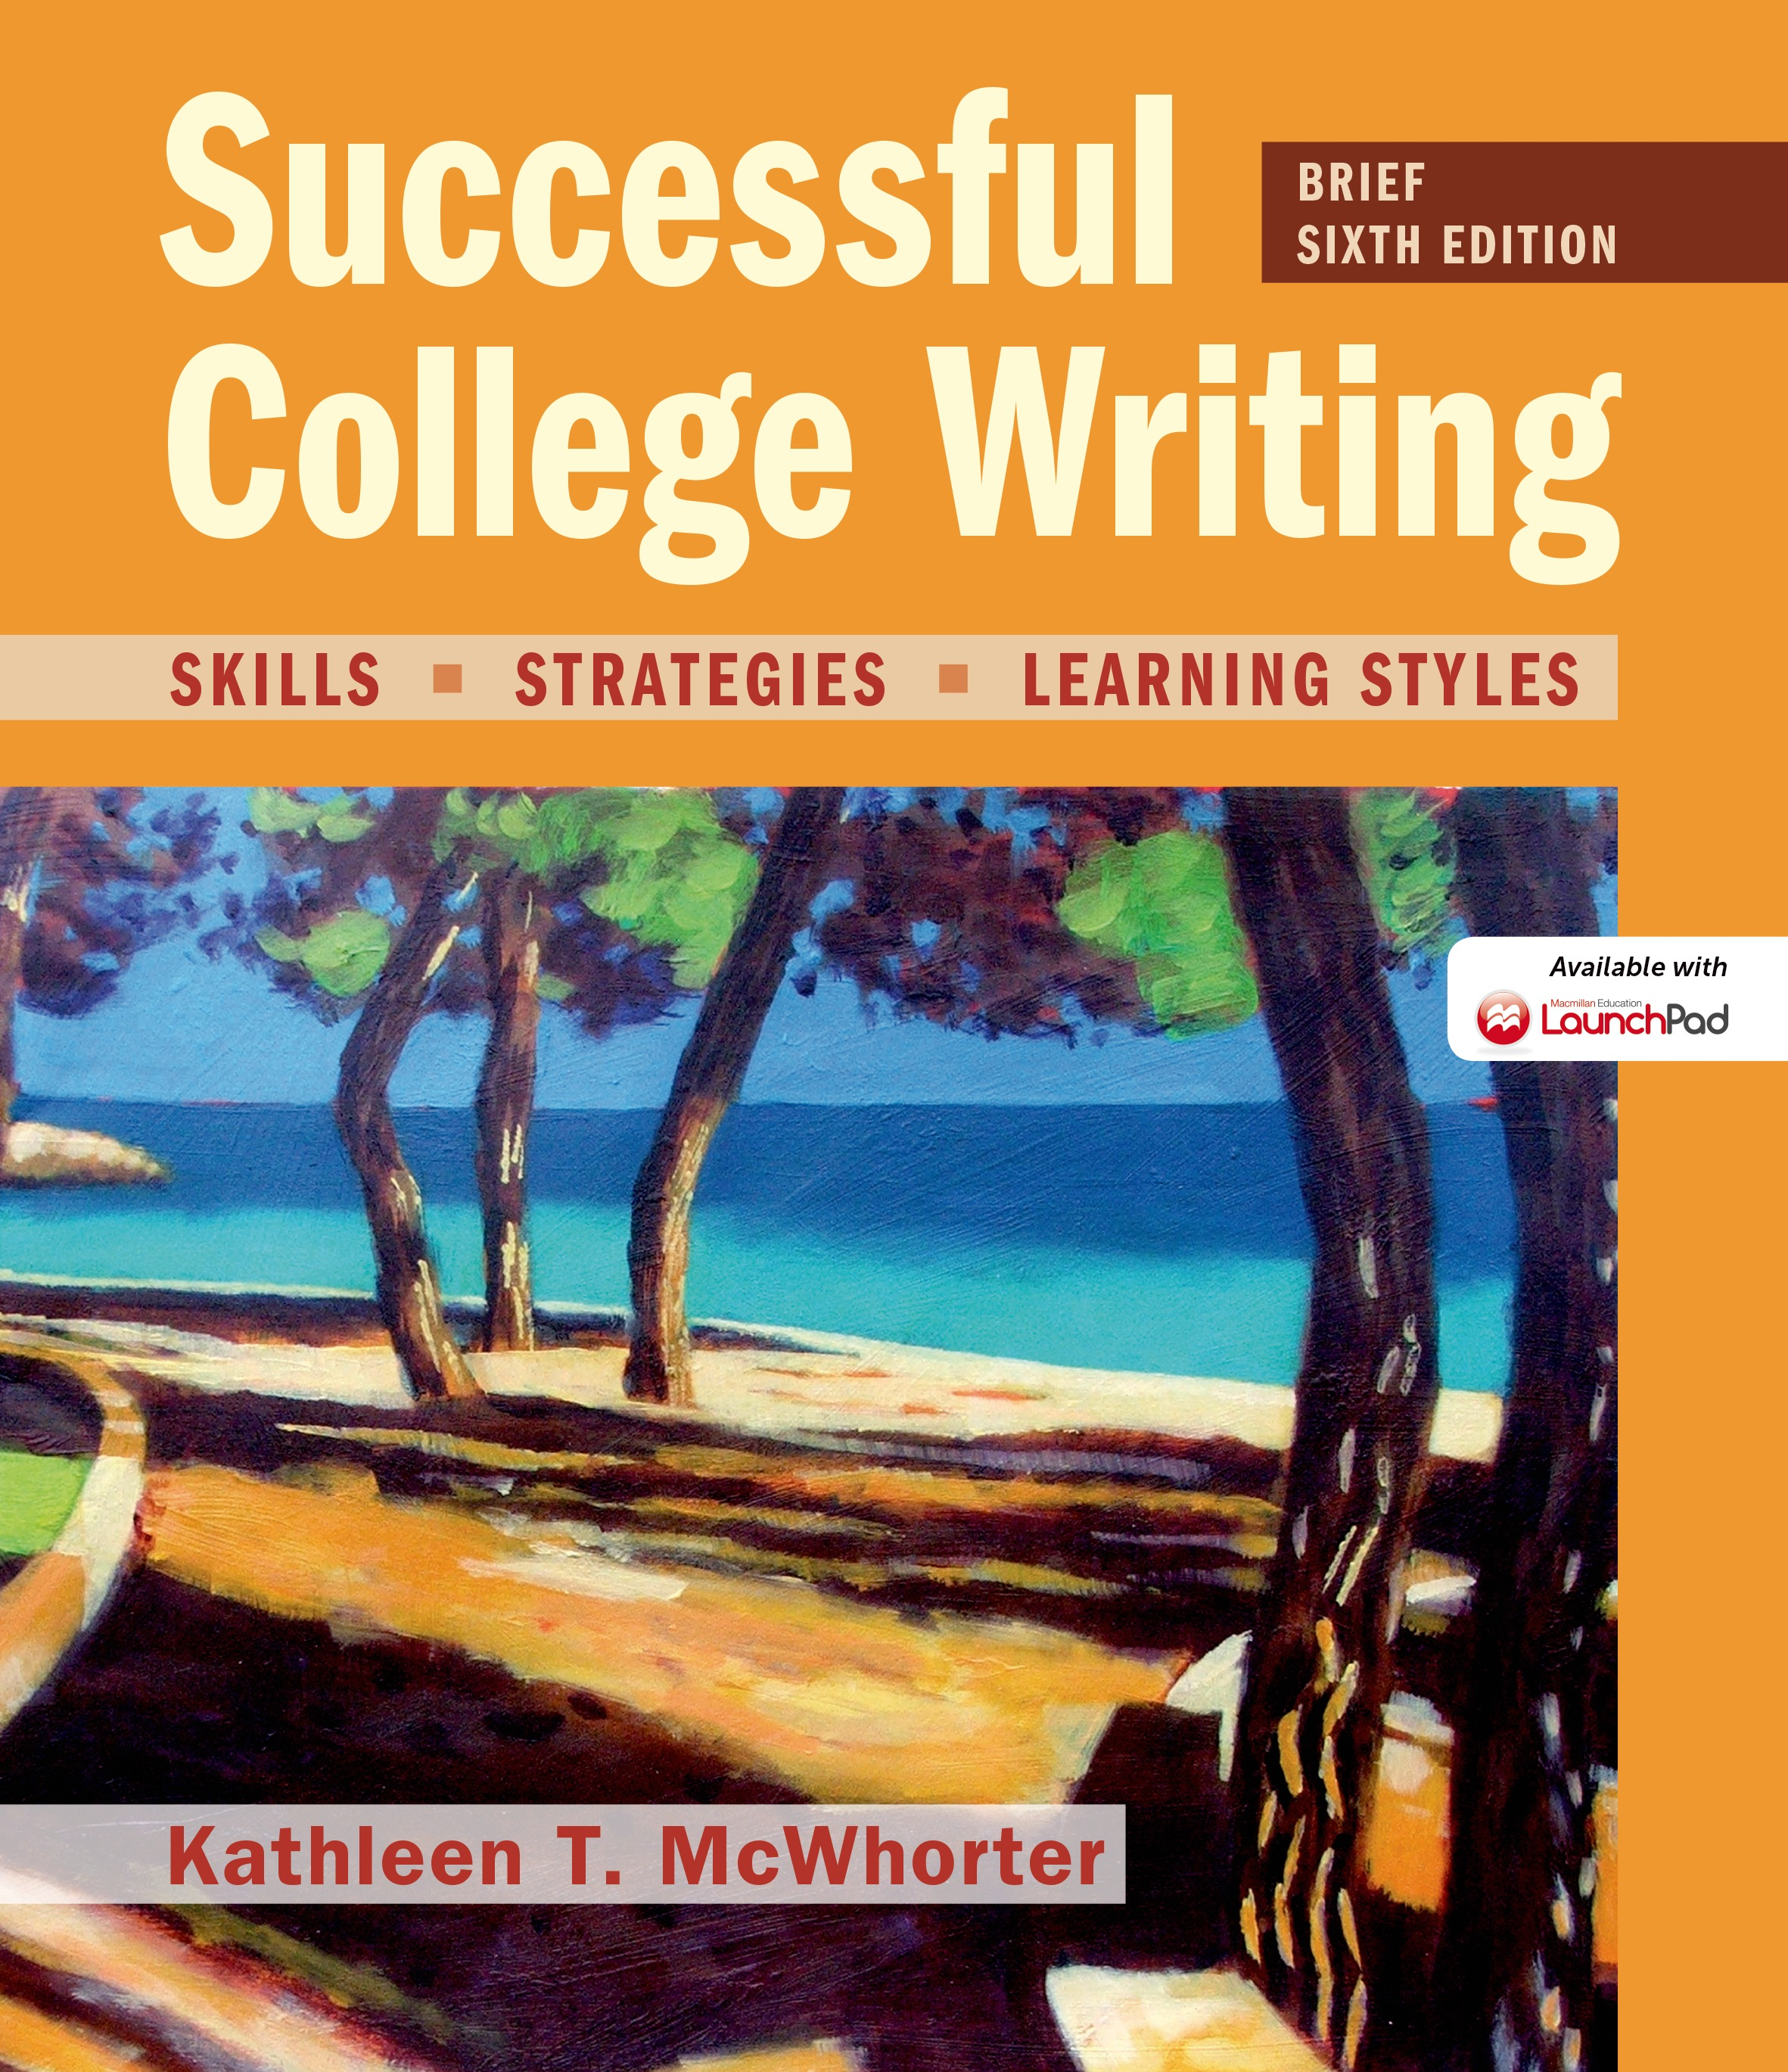 macmillan learning successful college writing brief edition image successful